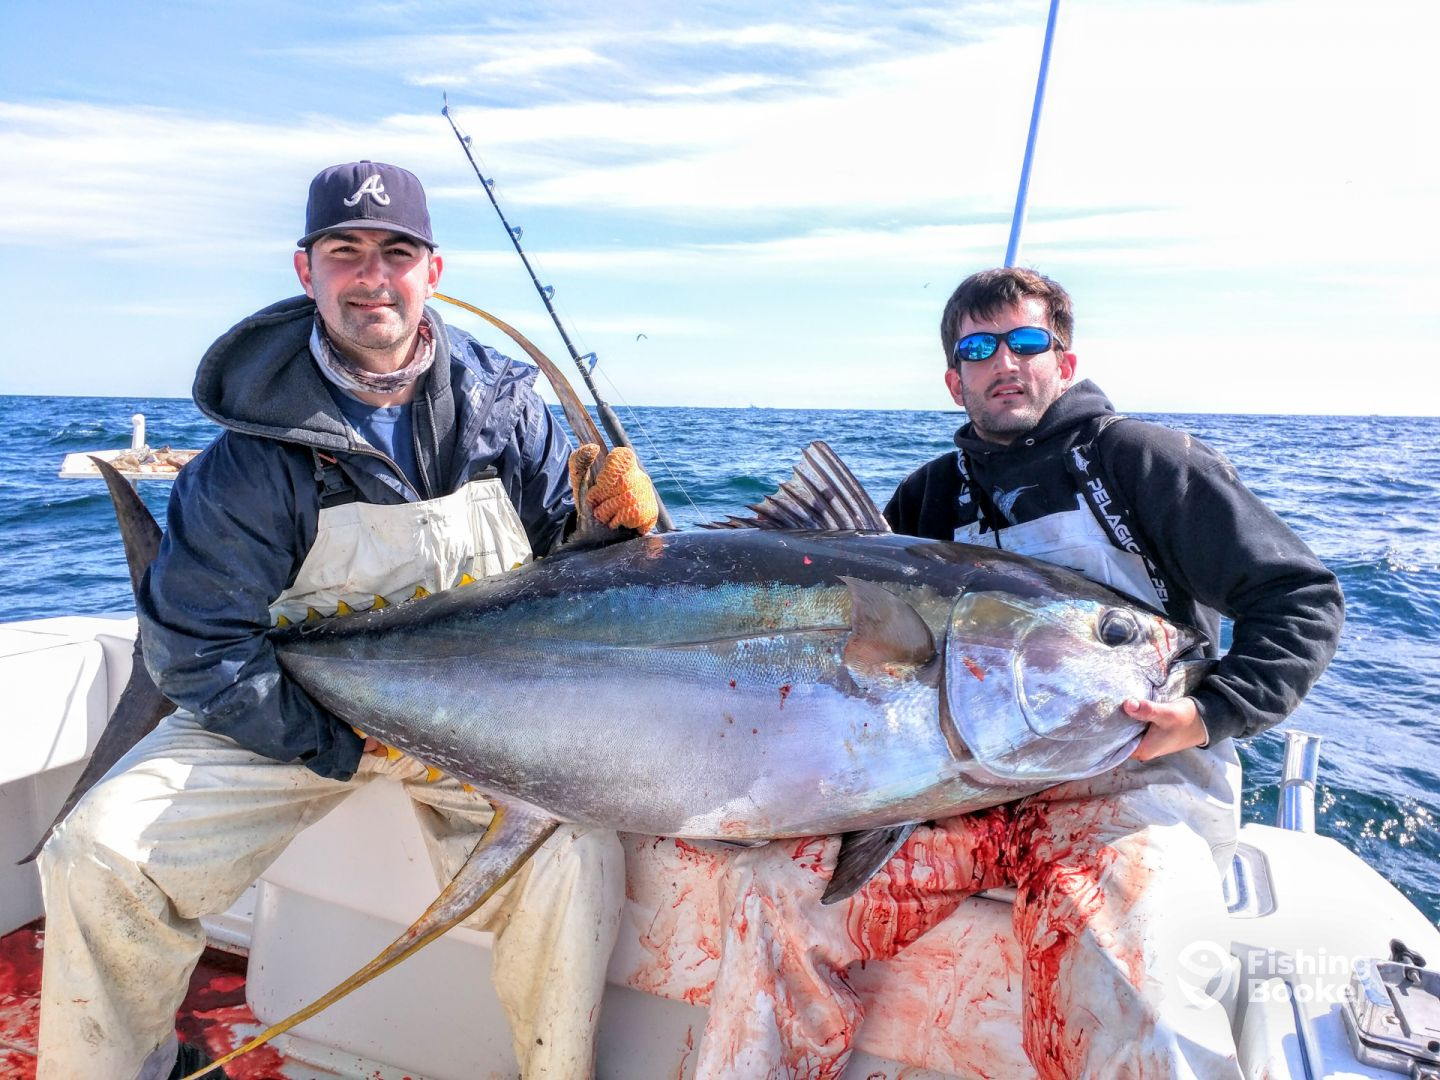 Tails up offshore fishing charters venice la fishingbooker for Venice la fishing charters